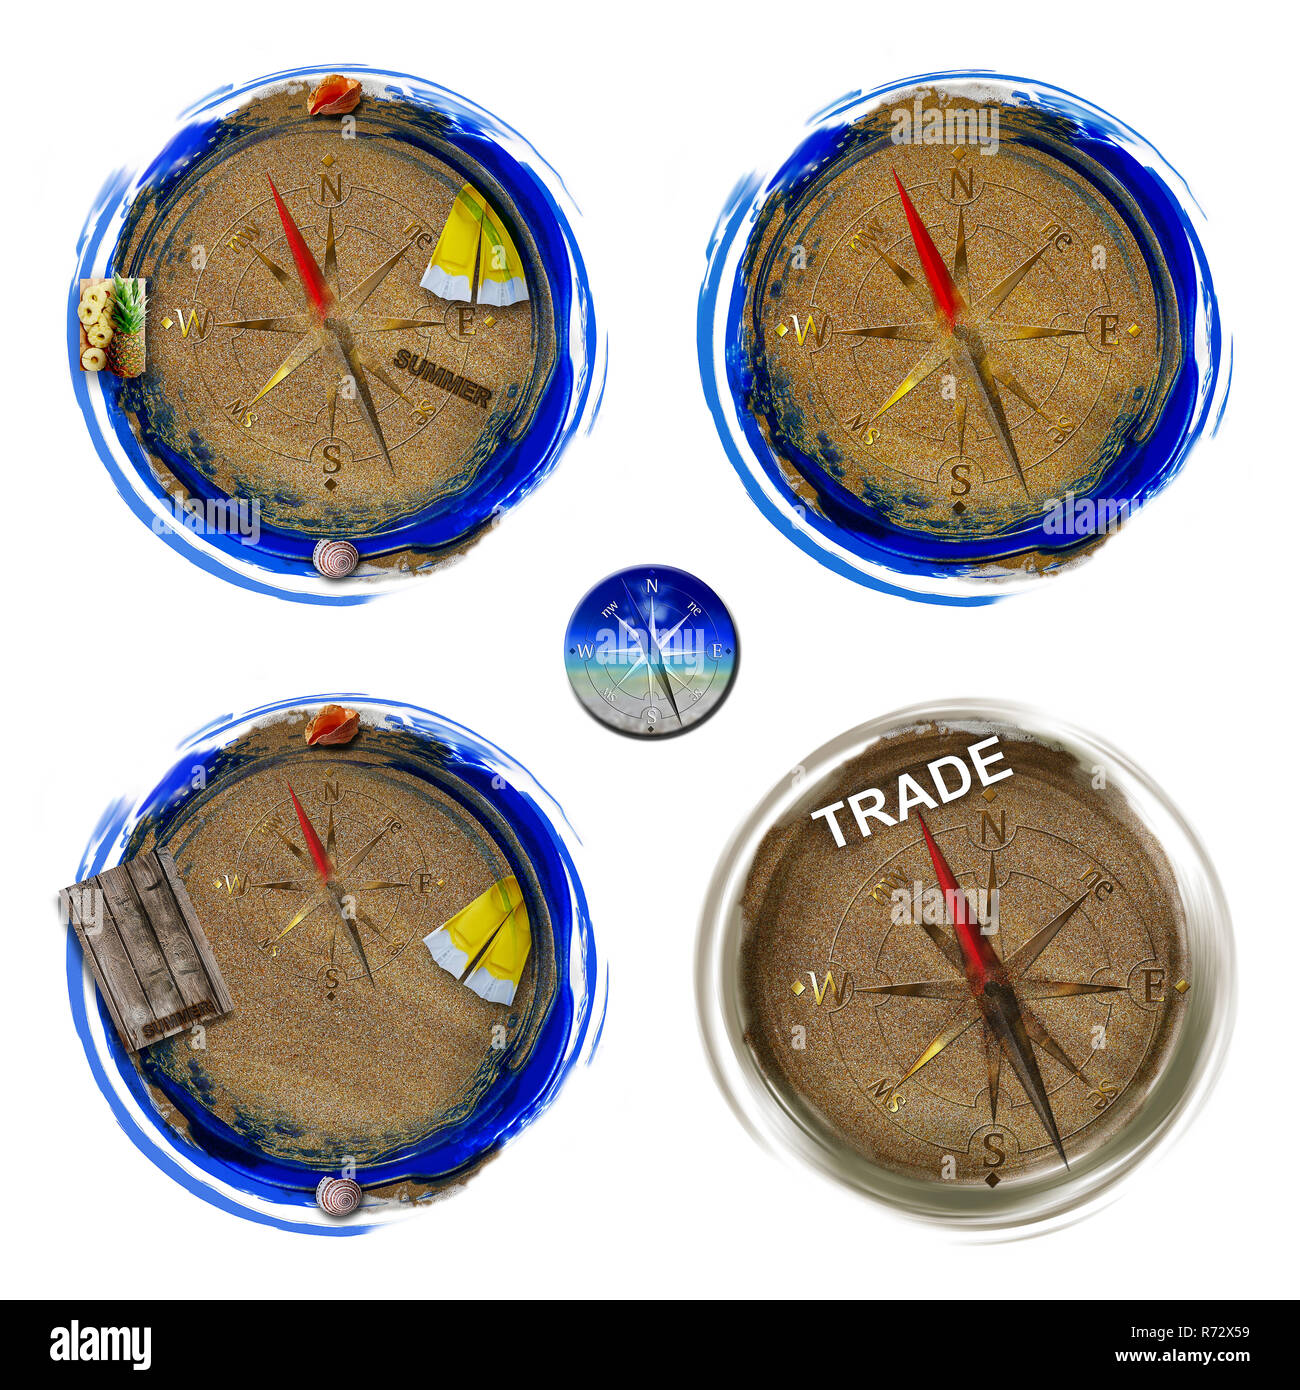 Image of a compass on sand. Travel concept. - Stock Image